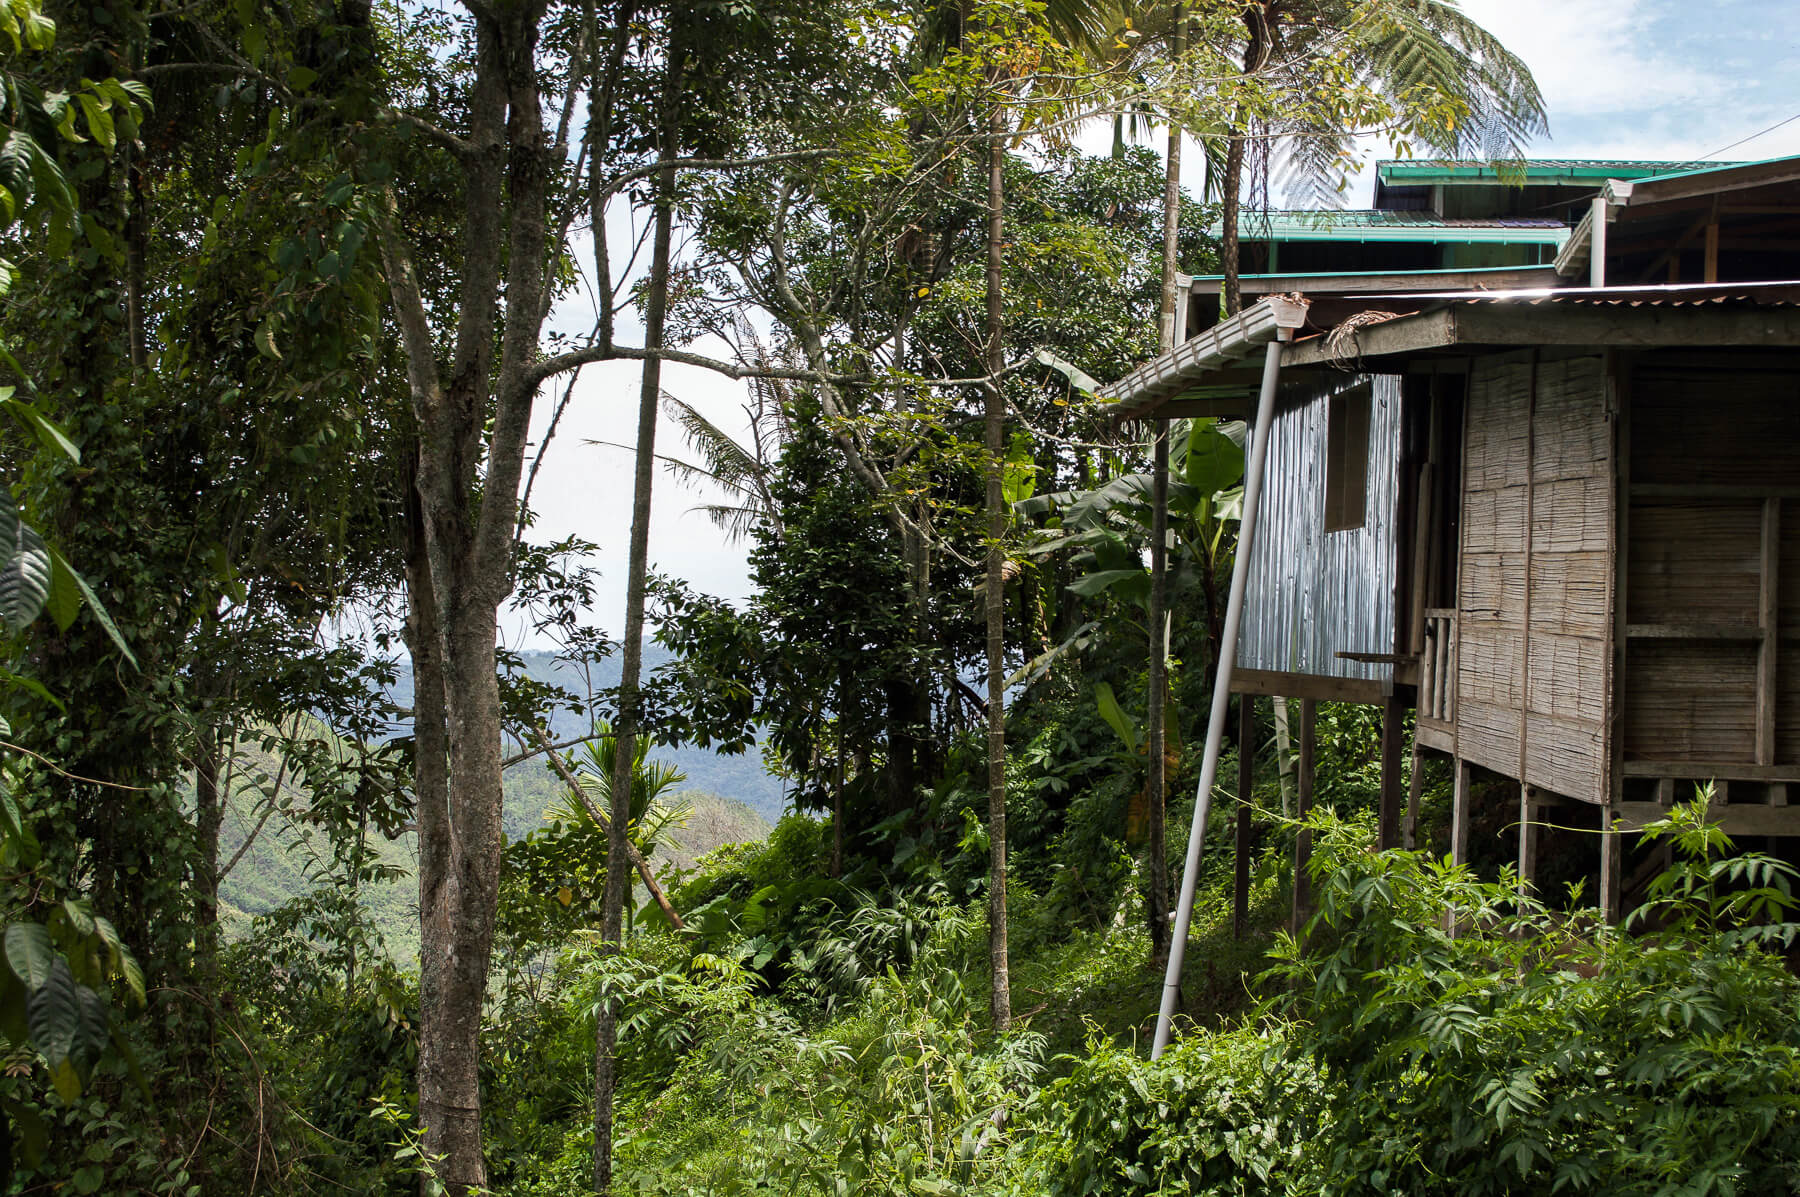 Side view of a house on stilts in the jungle